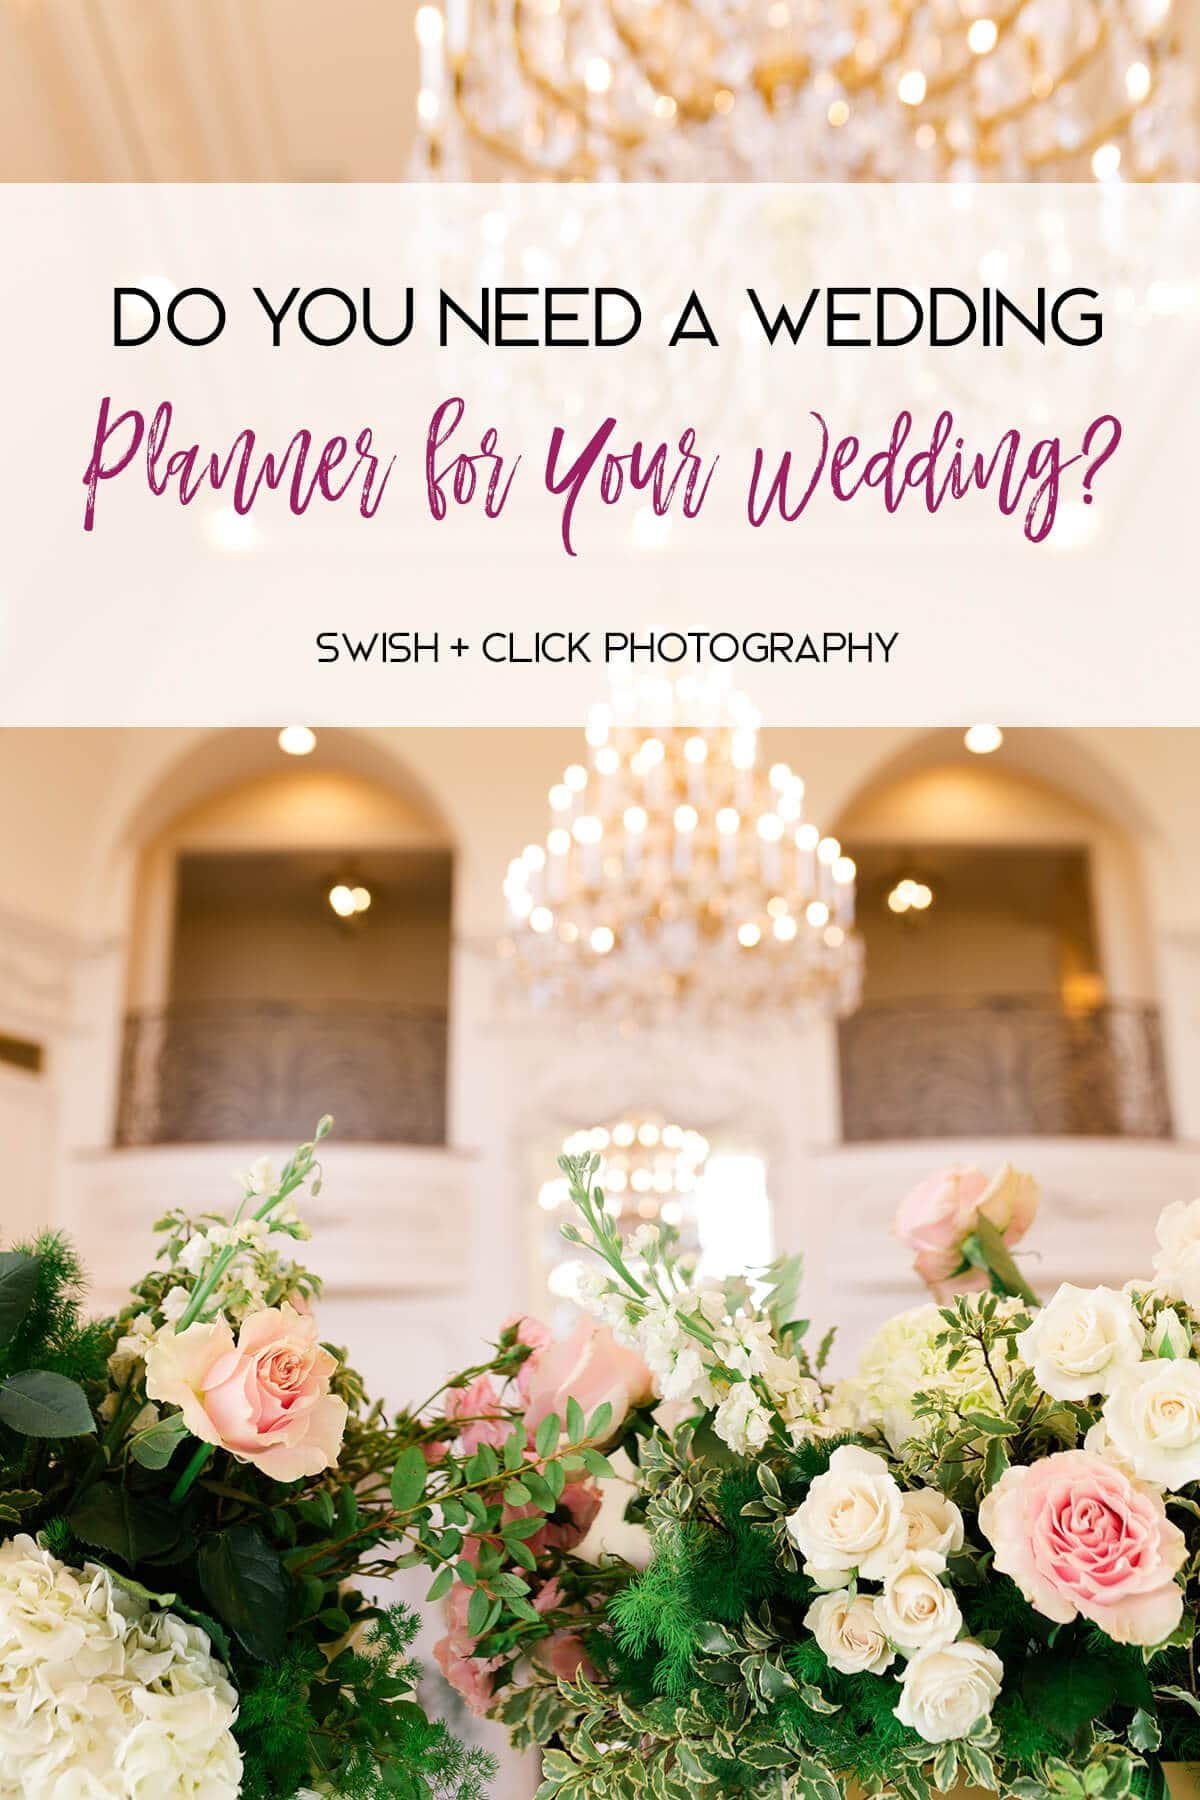 Do You Need a Wedding Planner for Your Wedding?